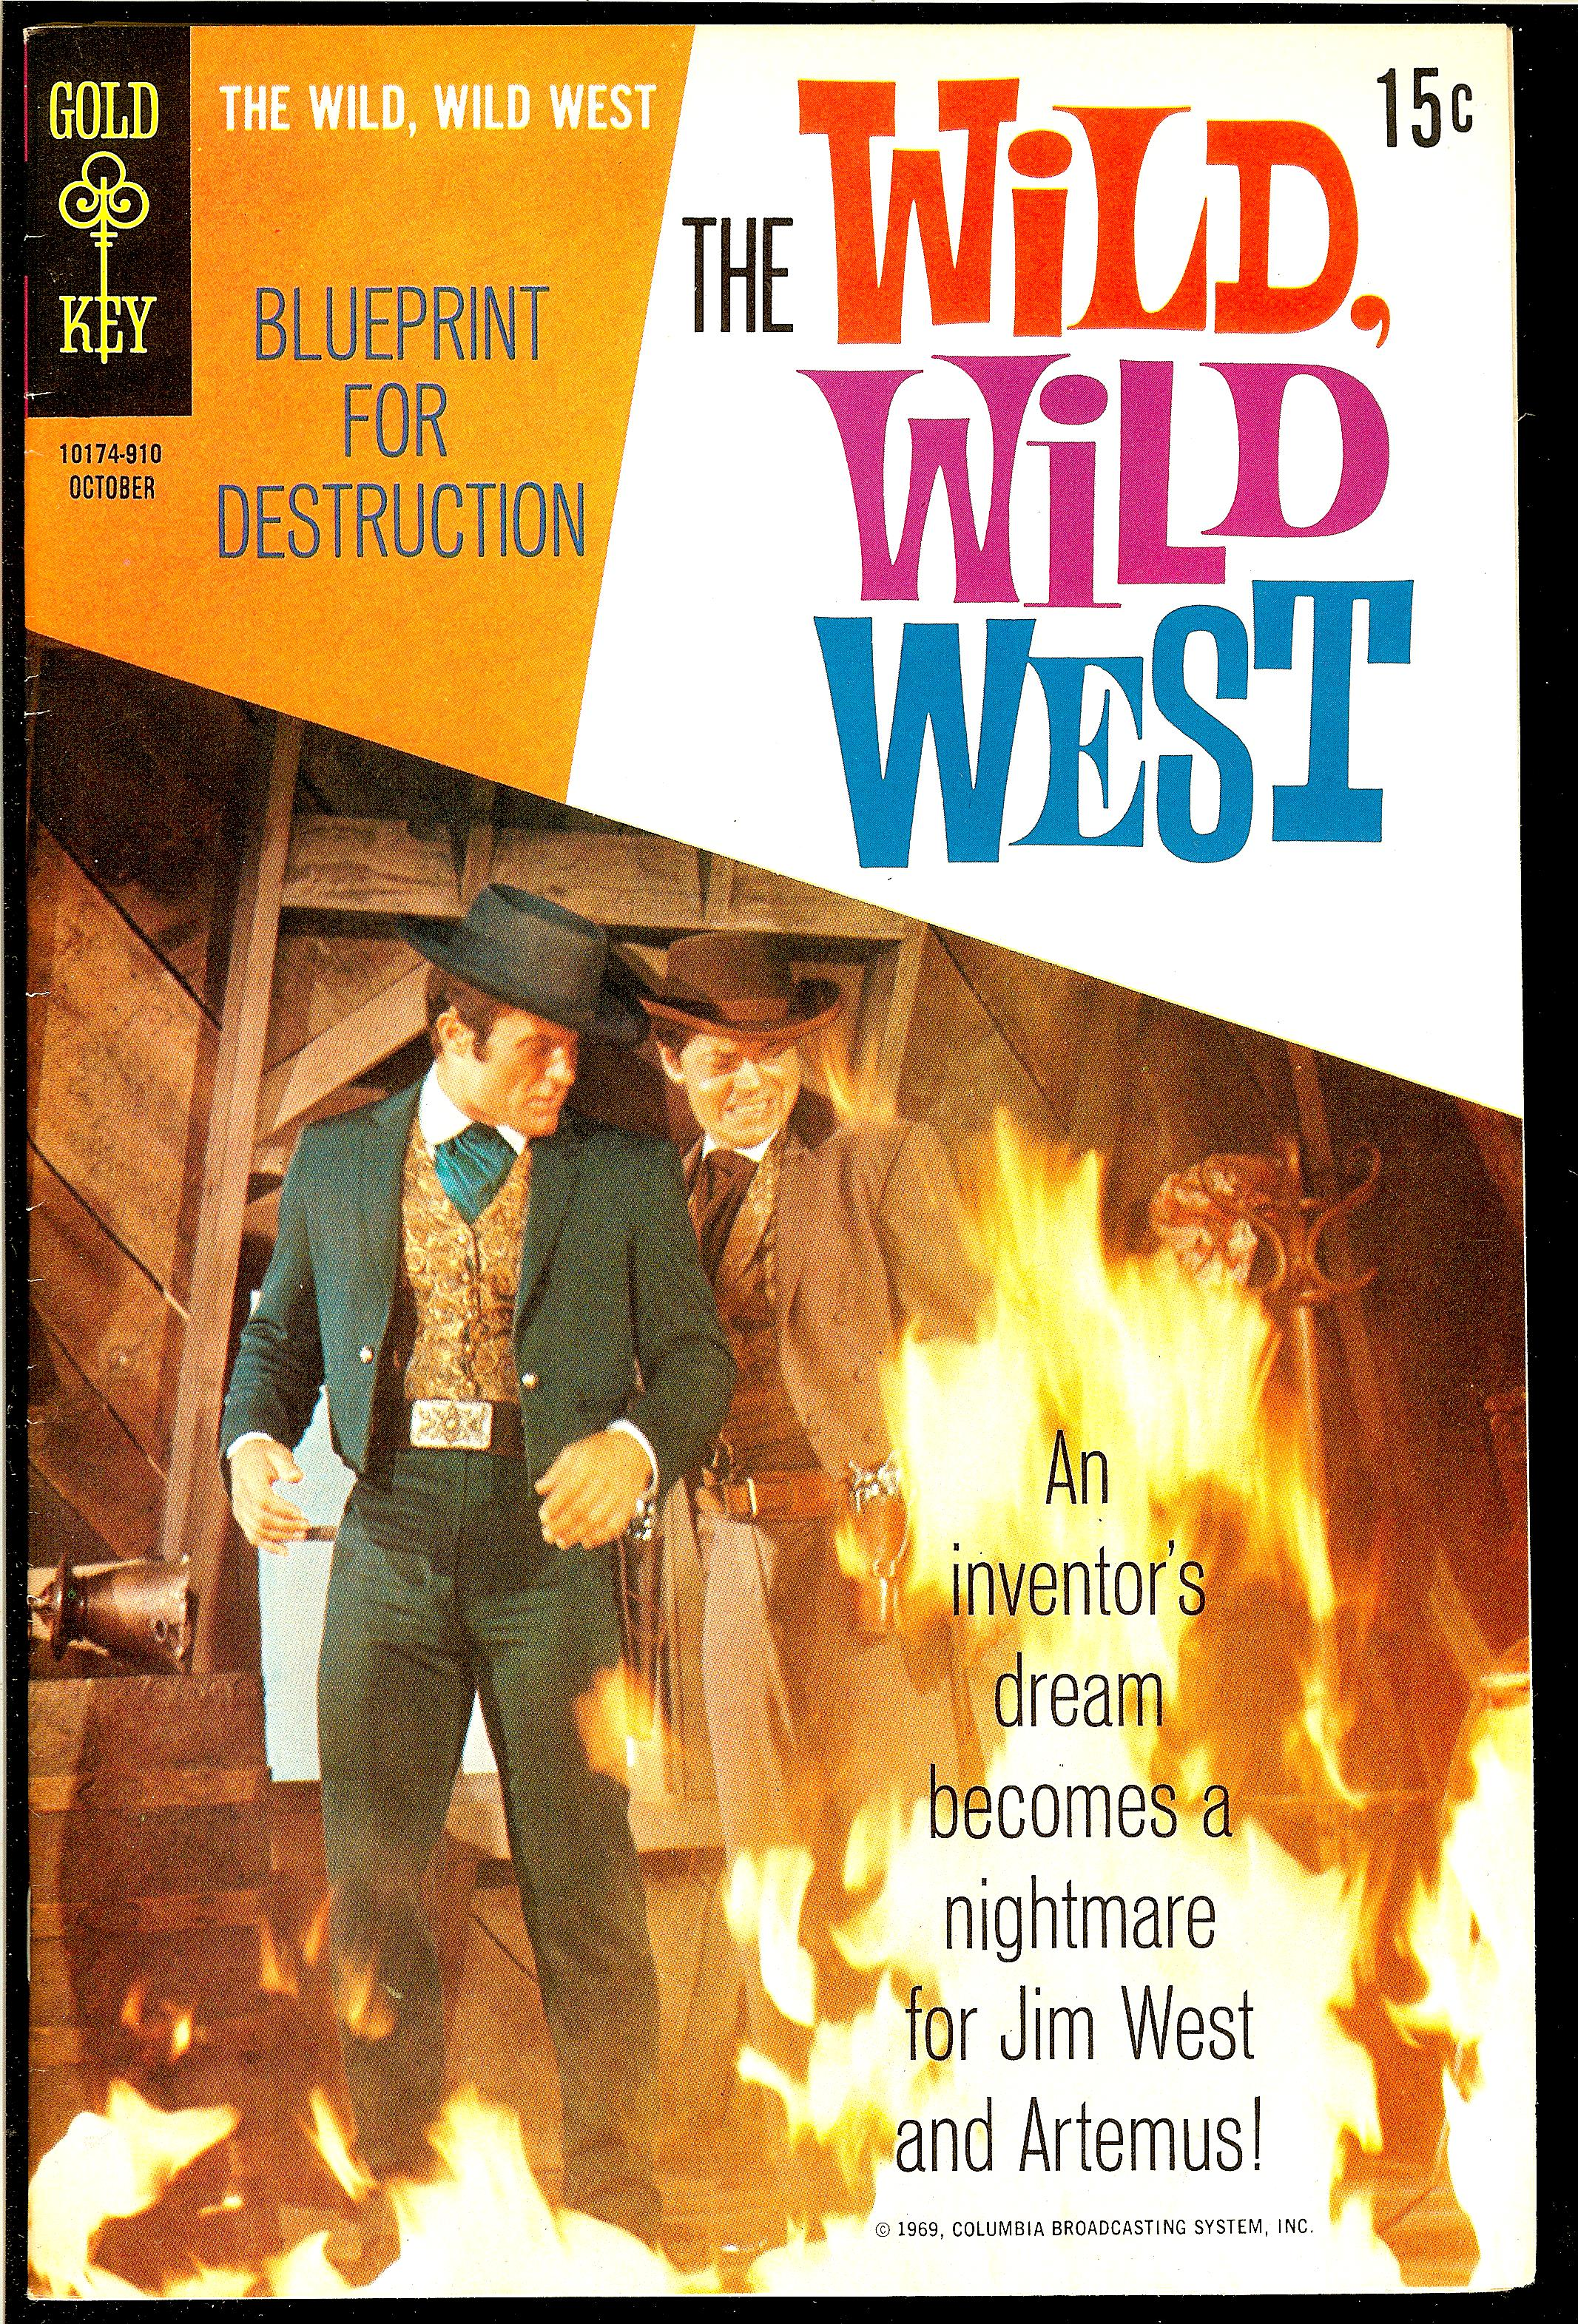 the wild west an analysis of post Data-driven decision making relies on contextual understanding of how data is gathered and the type of analysis used to arrive at an outcome the popularity of data-driven decision-making has increased the number of companies using statistics to support a preference or vendor selection.